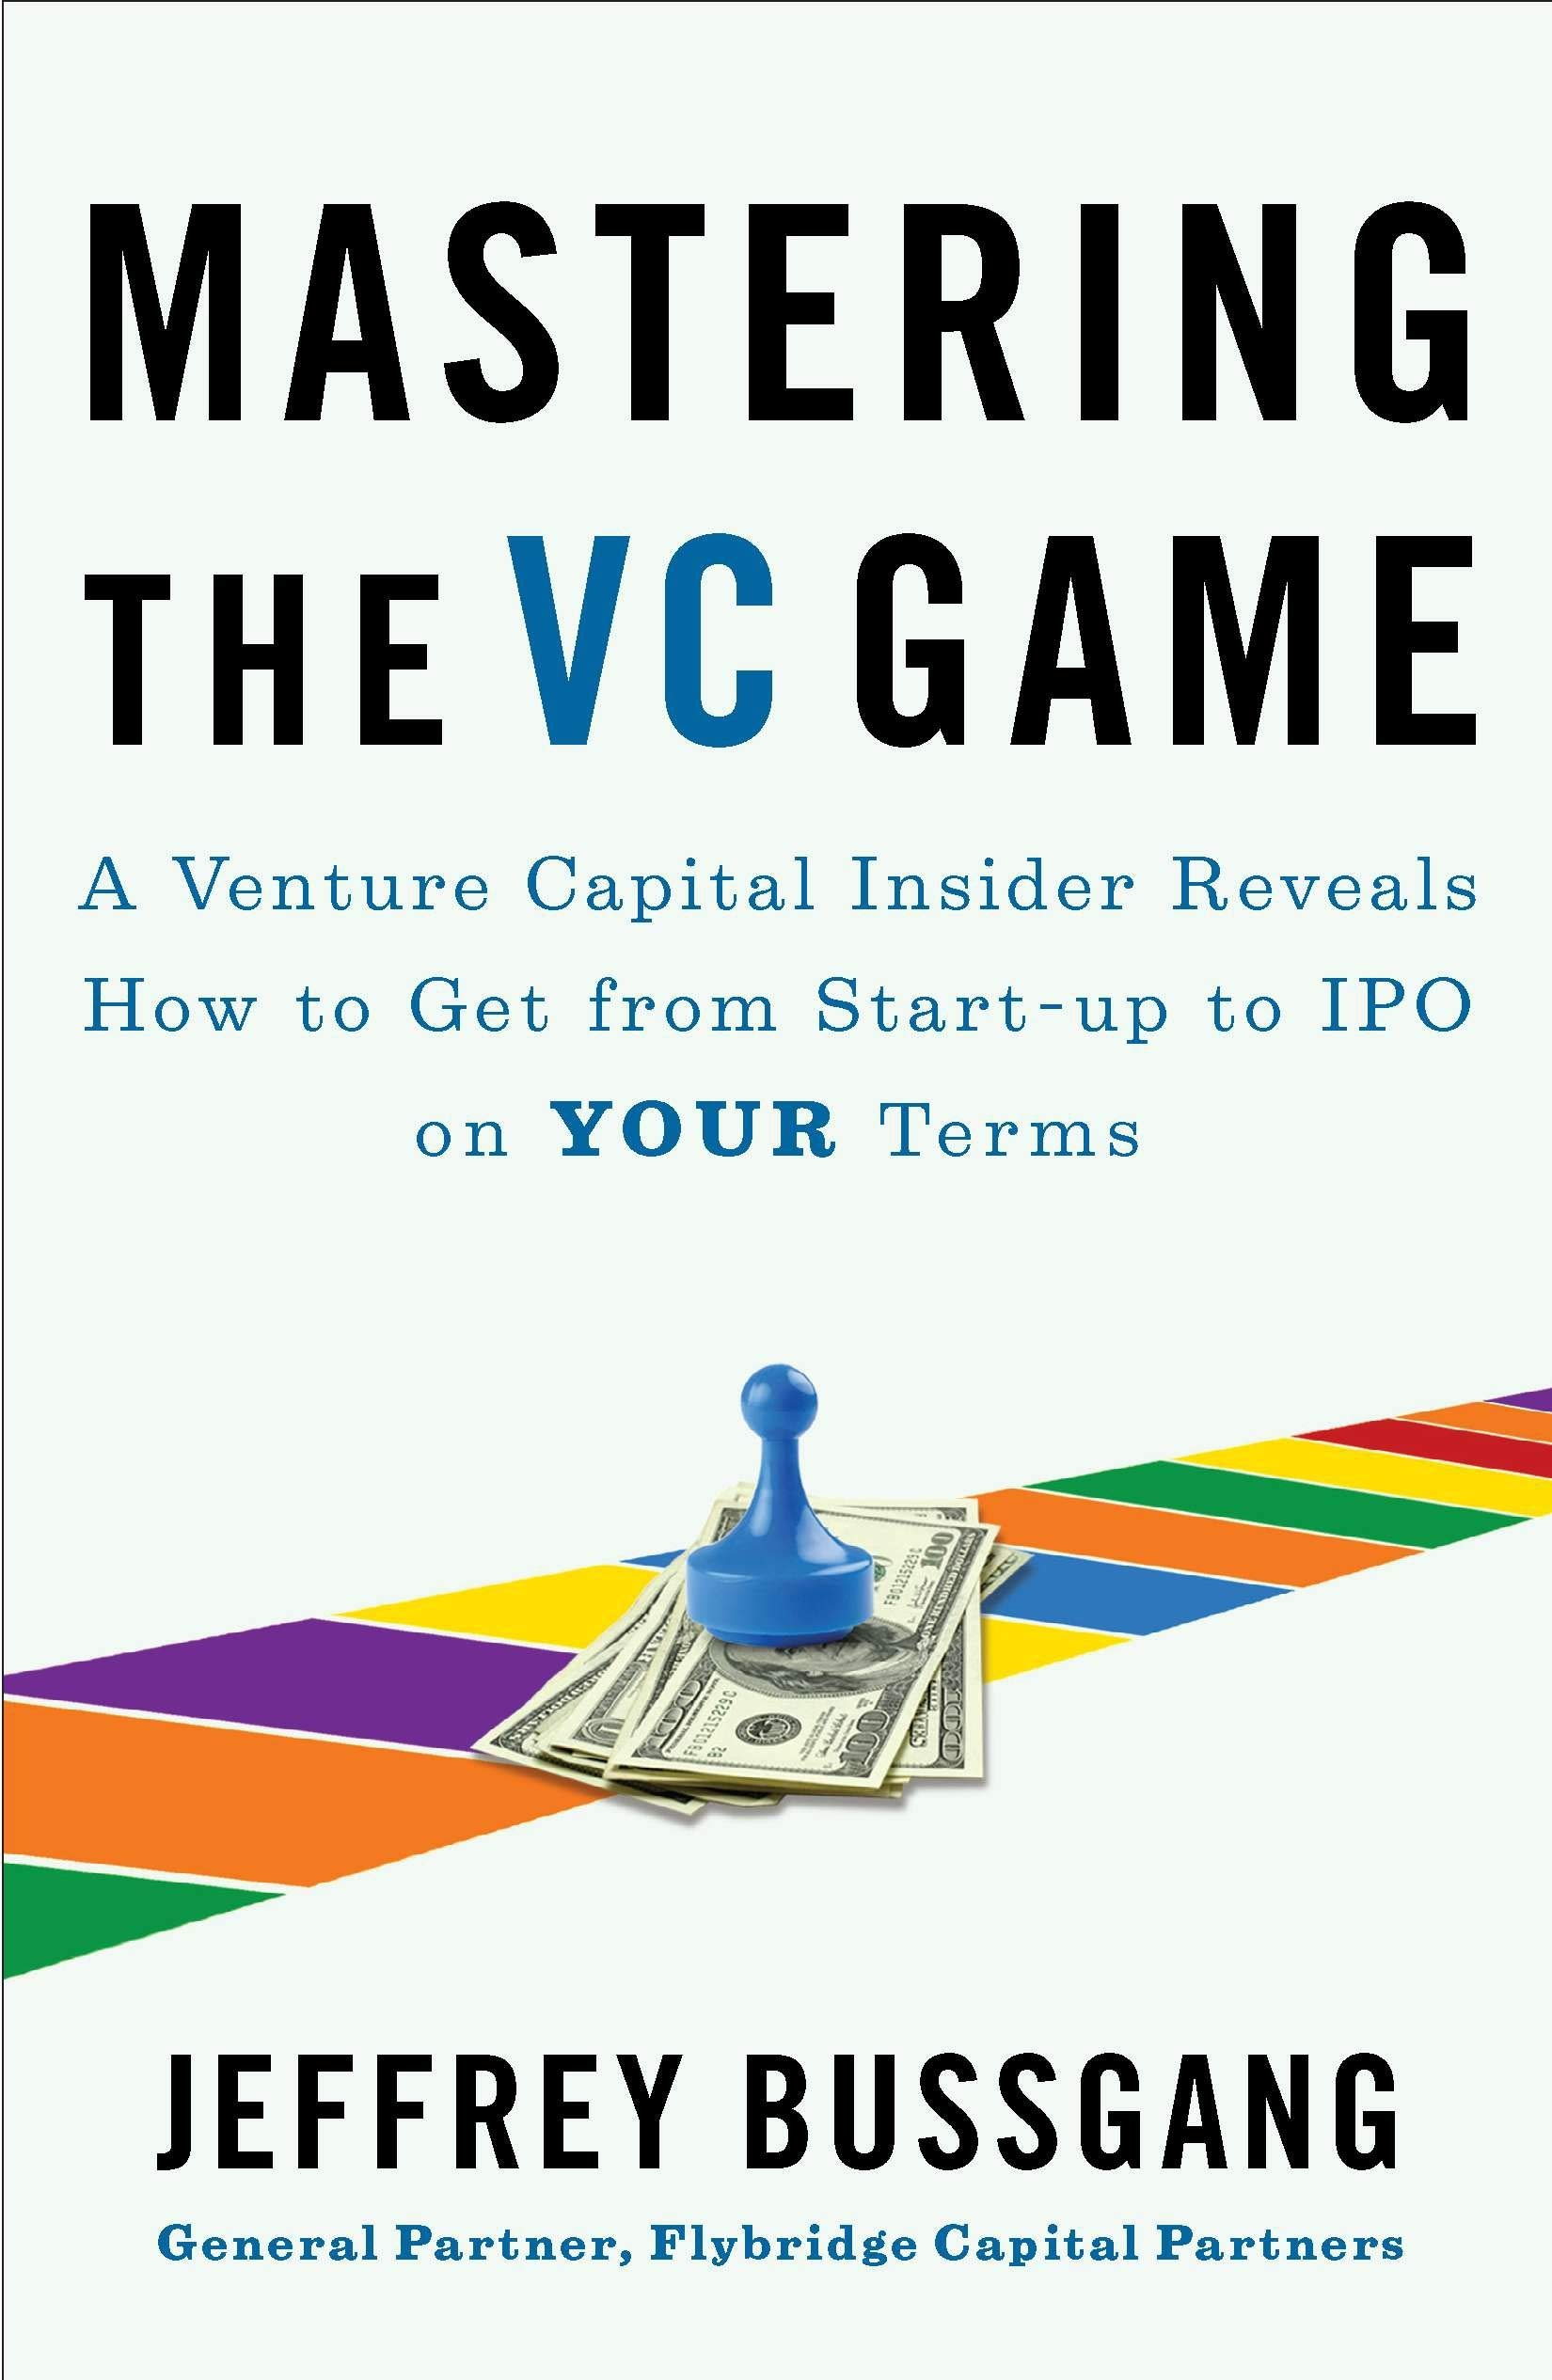 Amazon.com: Mastering the VC Game: A Venture Capital Insider Reveals How to  Get from Start-up to IPO on Your Terms (9781591844440): Bussgang, Jeffrey:  Books